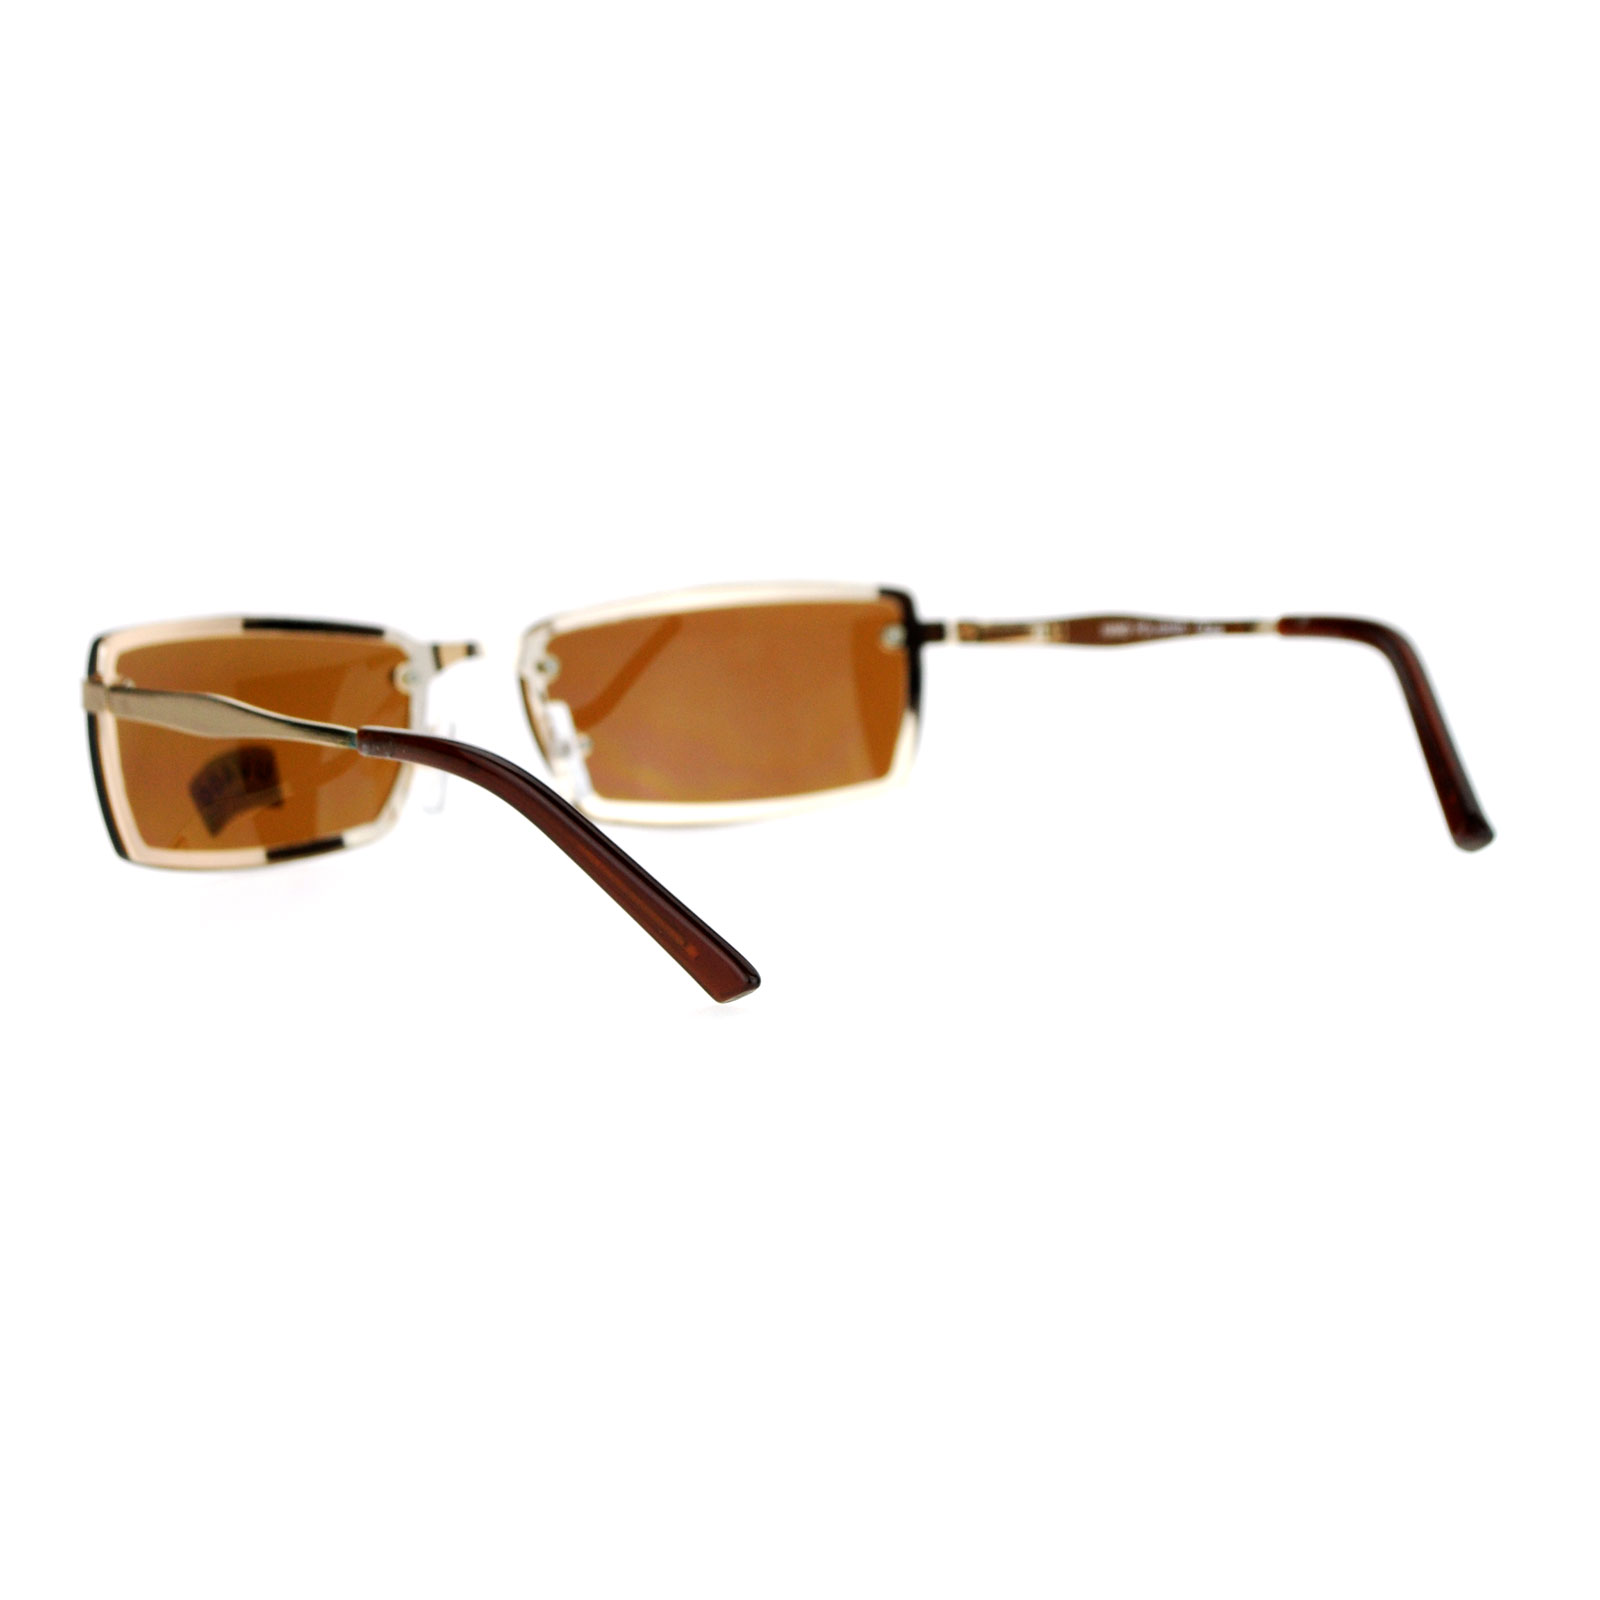 f5bc3cd54b1 SA106-Mens-Rimless-Narrow-Rectangular-Agent-Sunglasses thumbnail 10